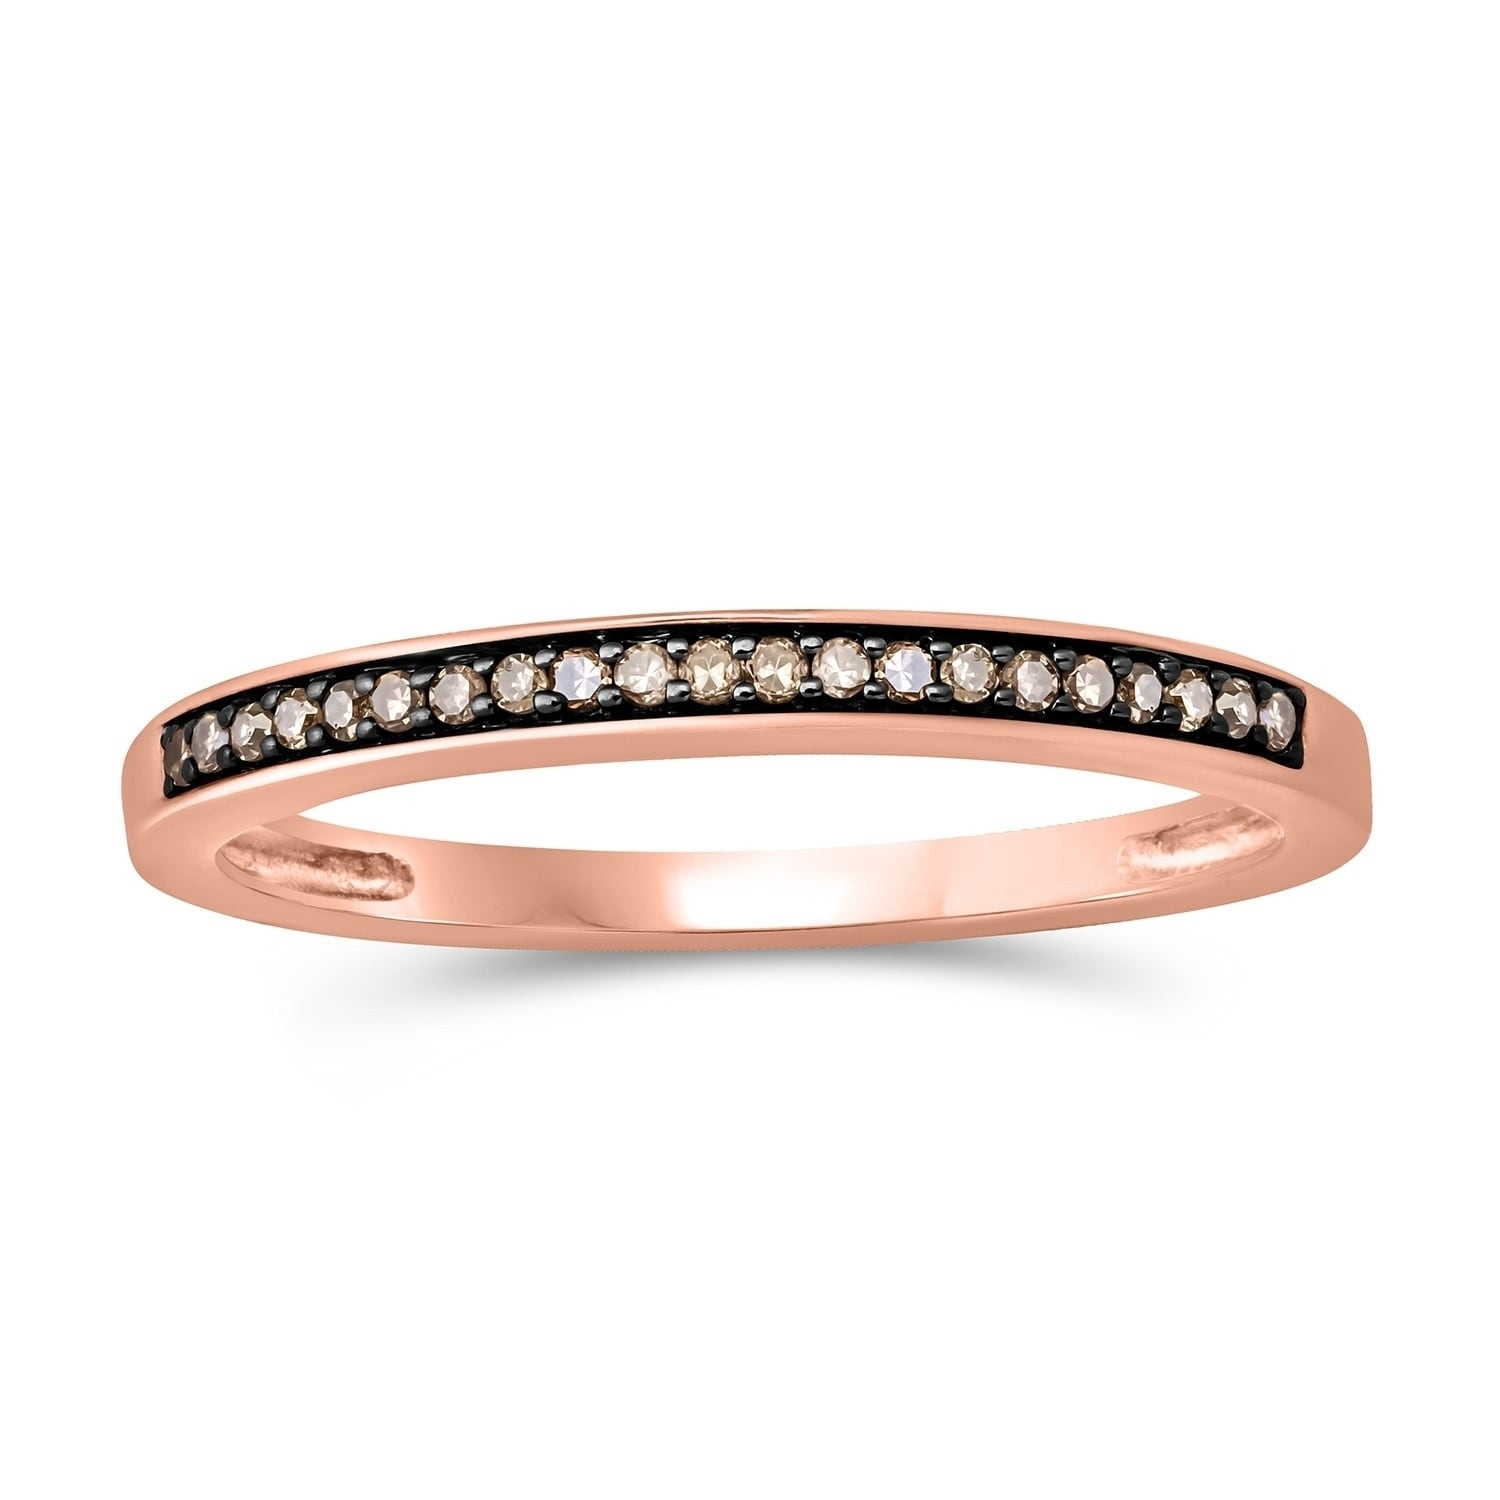 Shop 10K Rose Gold 1/10Ct Tdw Champagne Diamond Anniversary Band With Regard To Most Popular Diamond Twist Anniversary Bands In 10K Rose Gold (View 12 of 15)